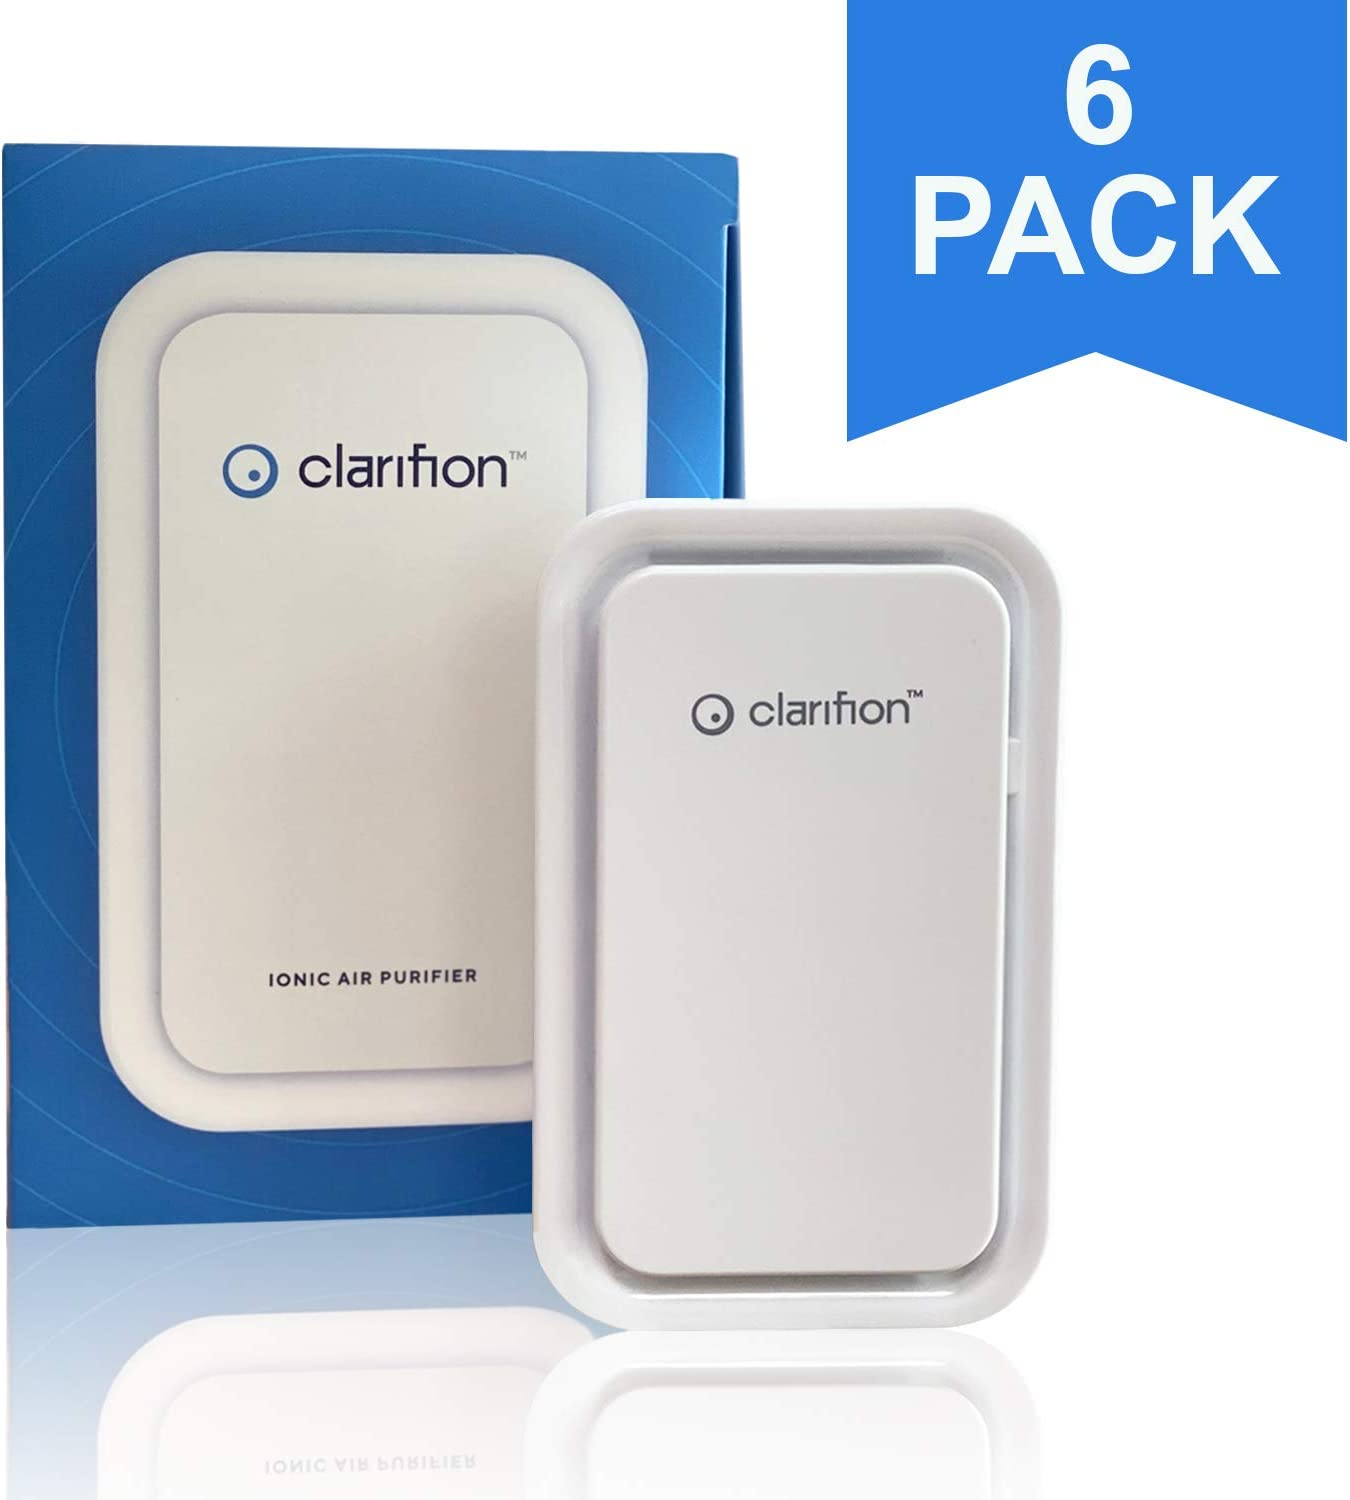 Clarifion - Negative Ion Generator with Highest Output (6 Pack) Filterless Mobile Ionizer & Travel Air Purifier, Plug in, Eliminates: Pollutants, Allergens, Germs, Smoke, Bacteria, Pet Dander & More